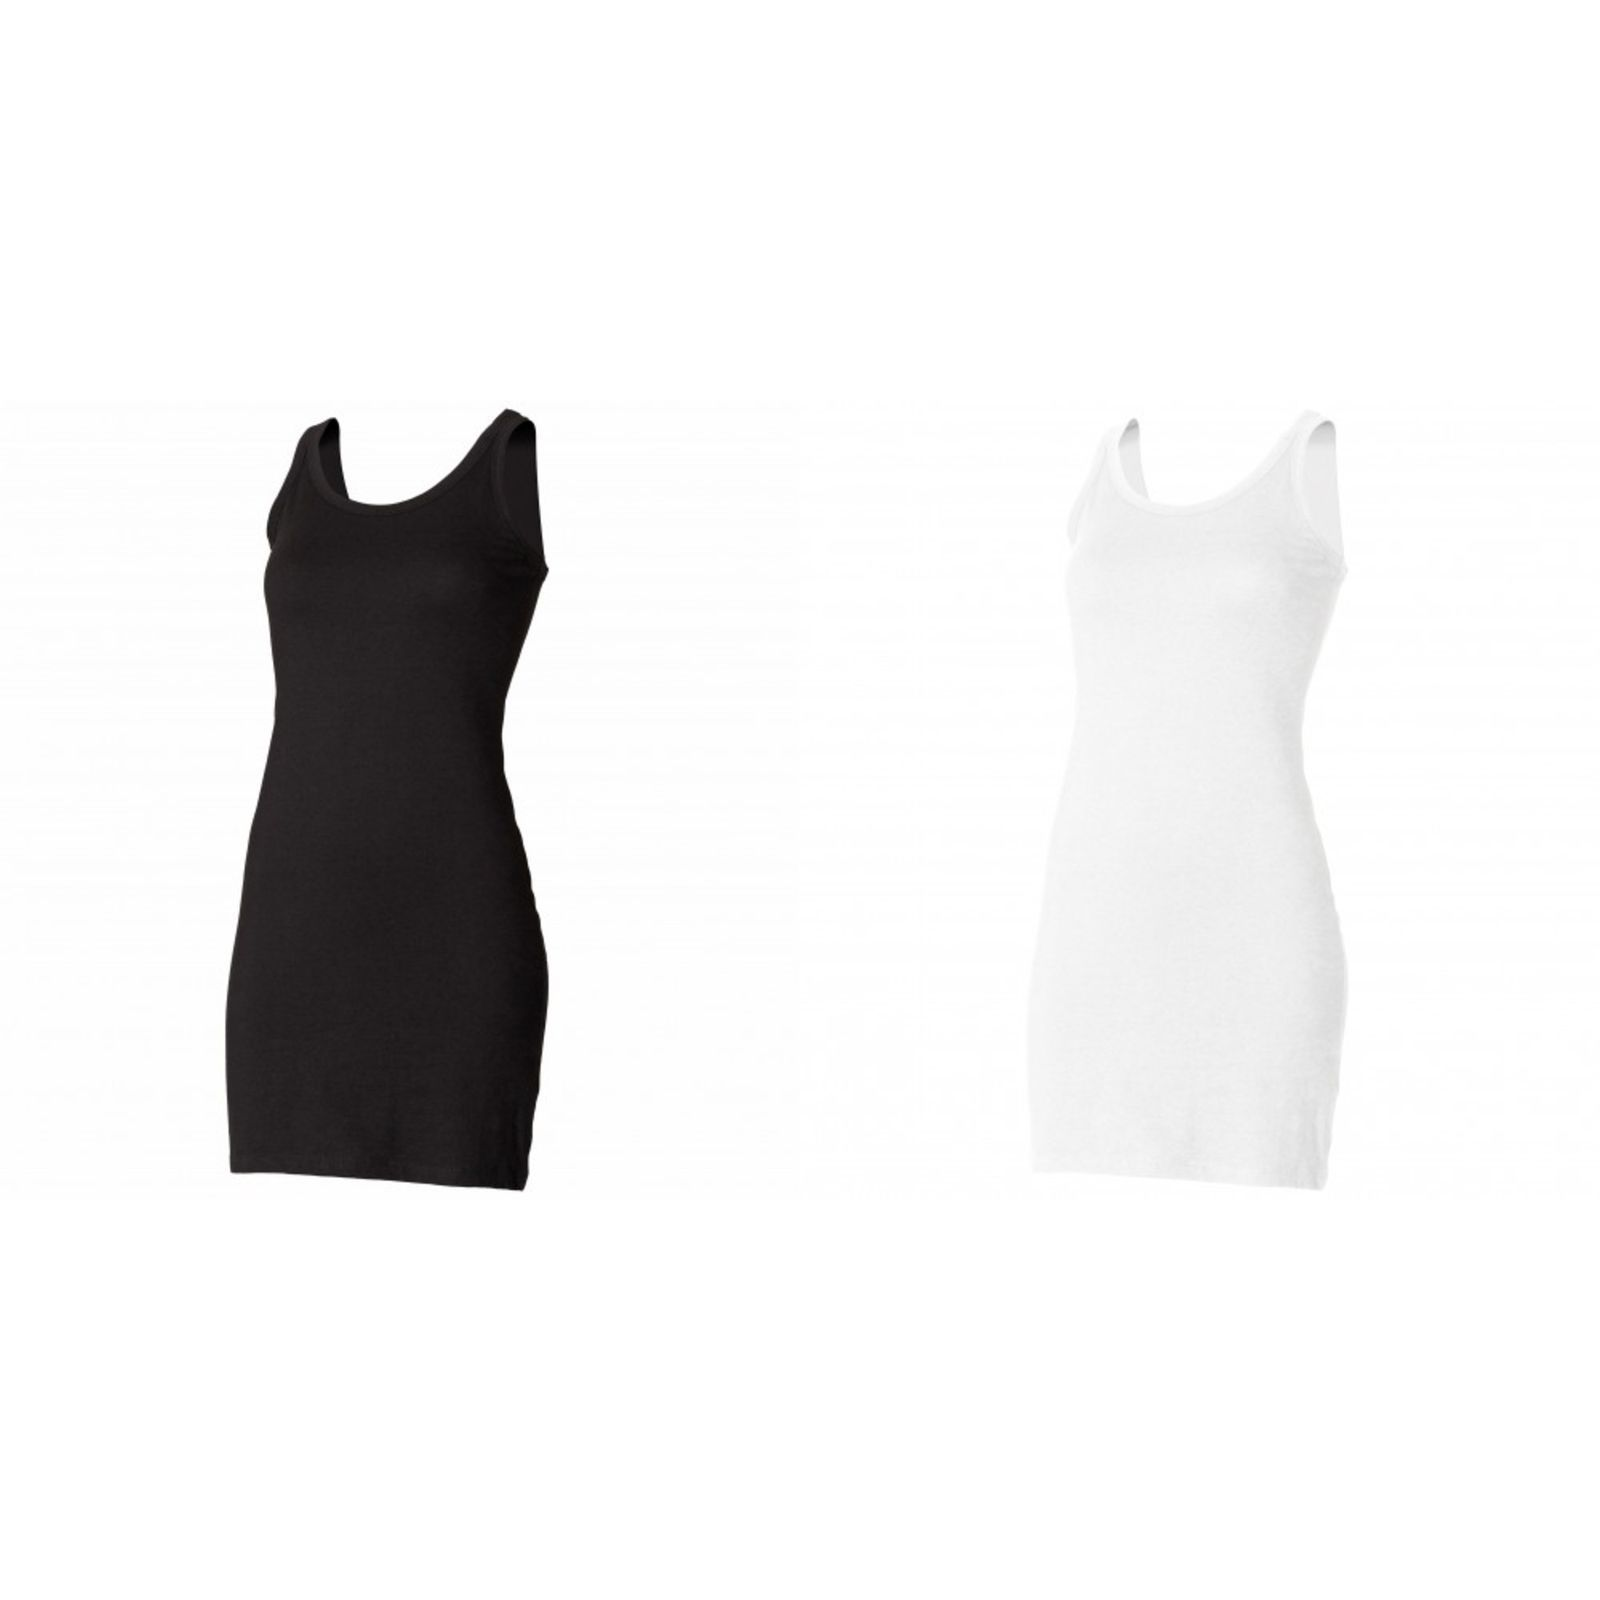 Skinni Fit Ladies Womens Extra Long Stretch Tank Vest Top Sizes S-Xl  (Rw1366) 174ce89e7